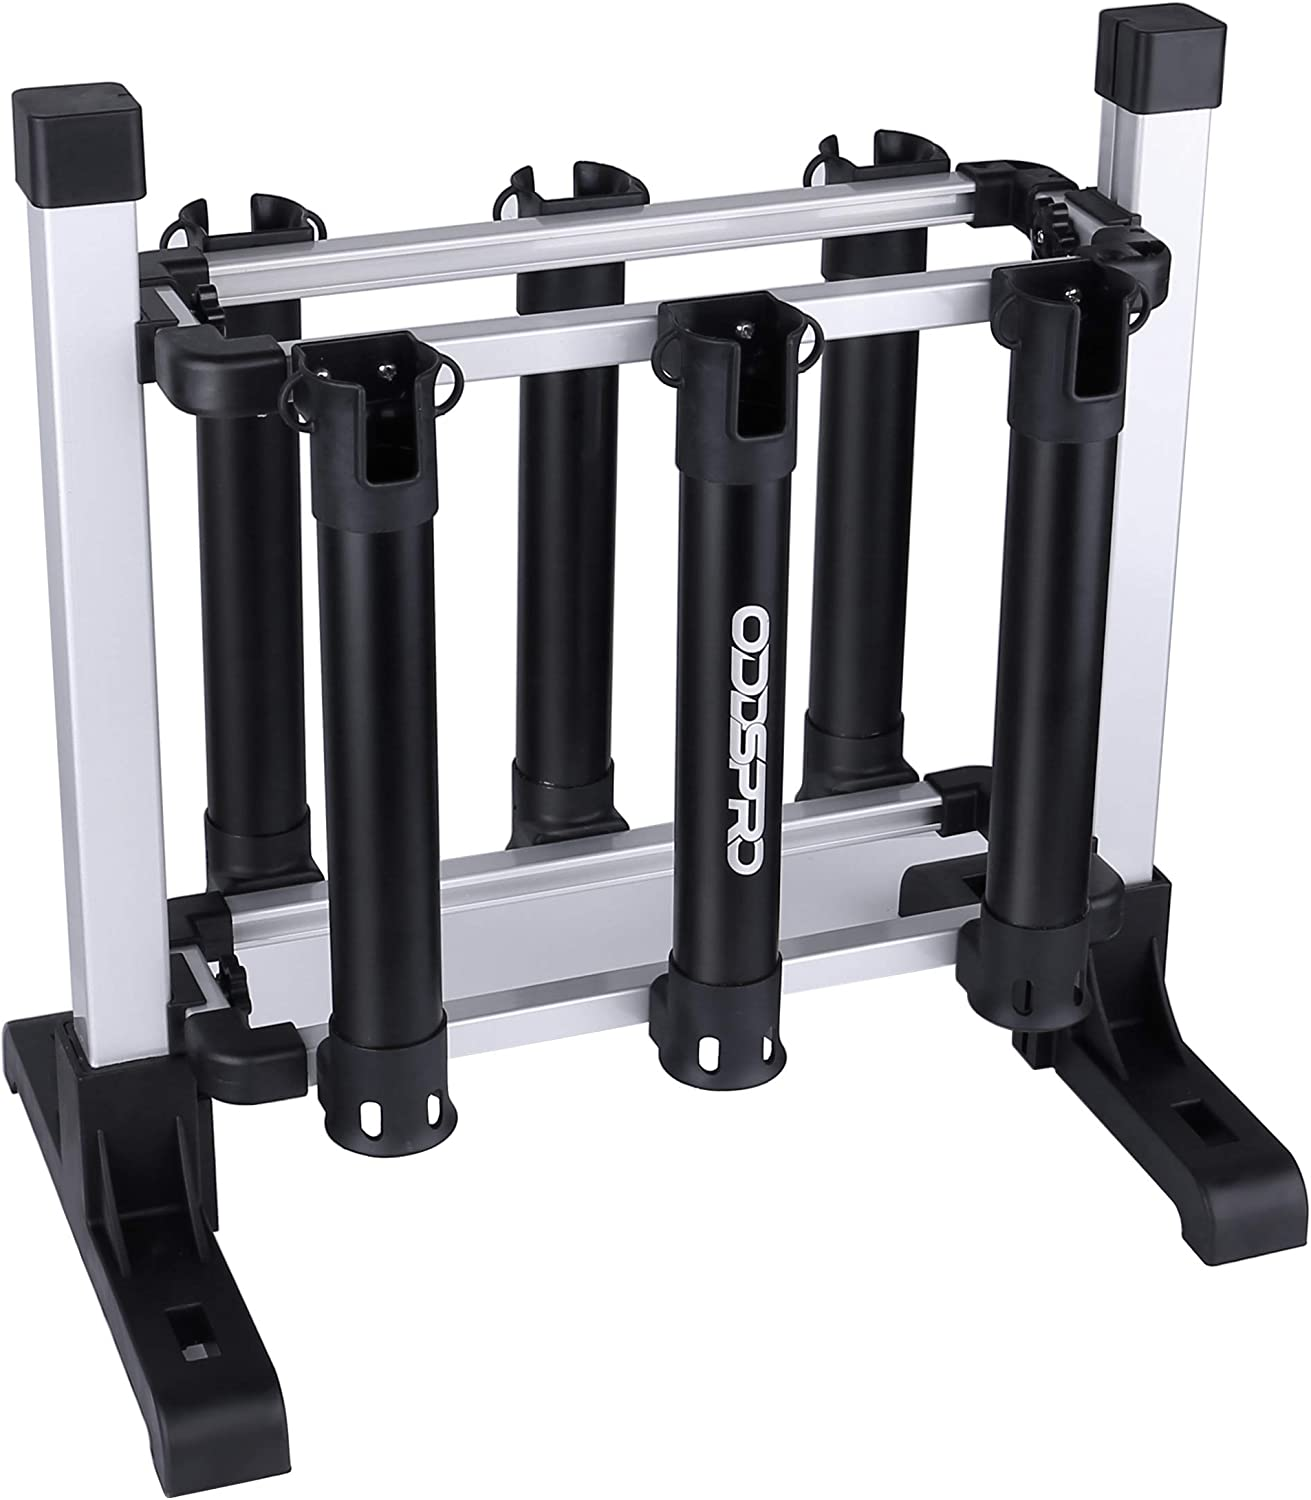 ODDSPRO Fishing Rod Rack, Portable Fishing Rod Storage Rack – Fishing Rod Holder for All Types of Fishing Rod and Reel Combos